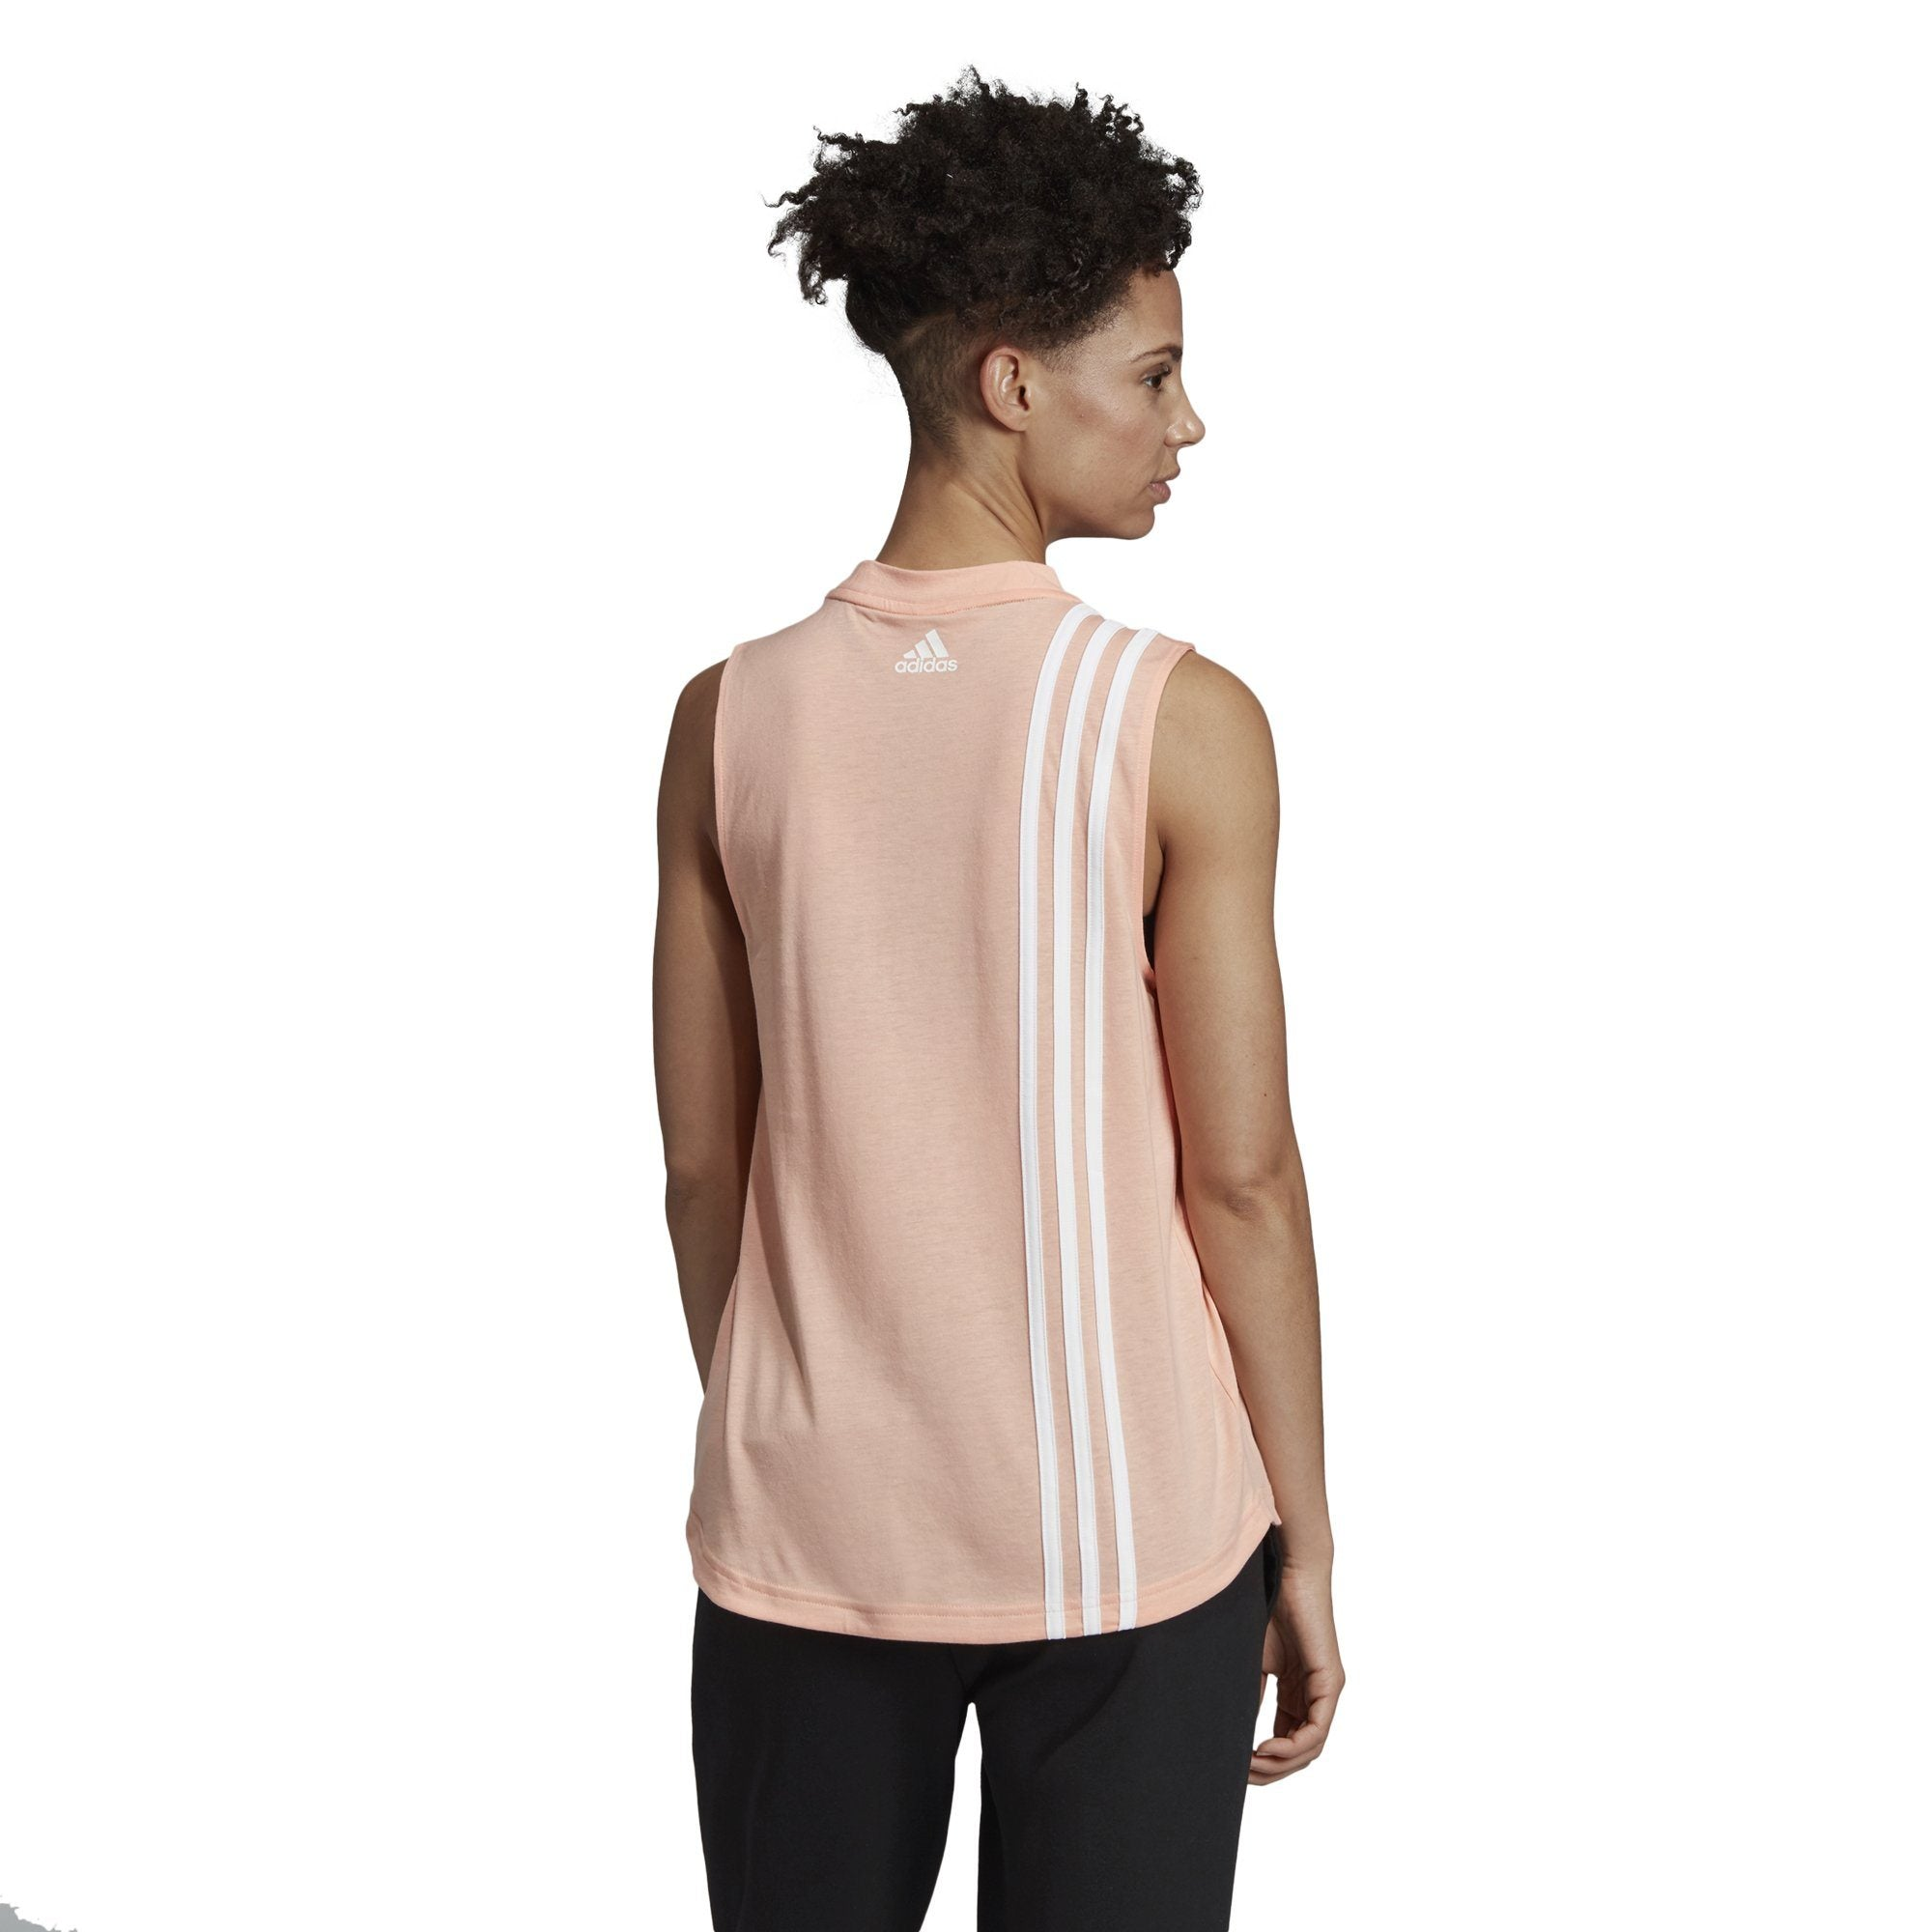 Adidas Womens Must Haves 3-Stripes Tank Top - glow pink/white SP-APPARELTANK-WOMENS Adidas